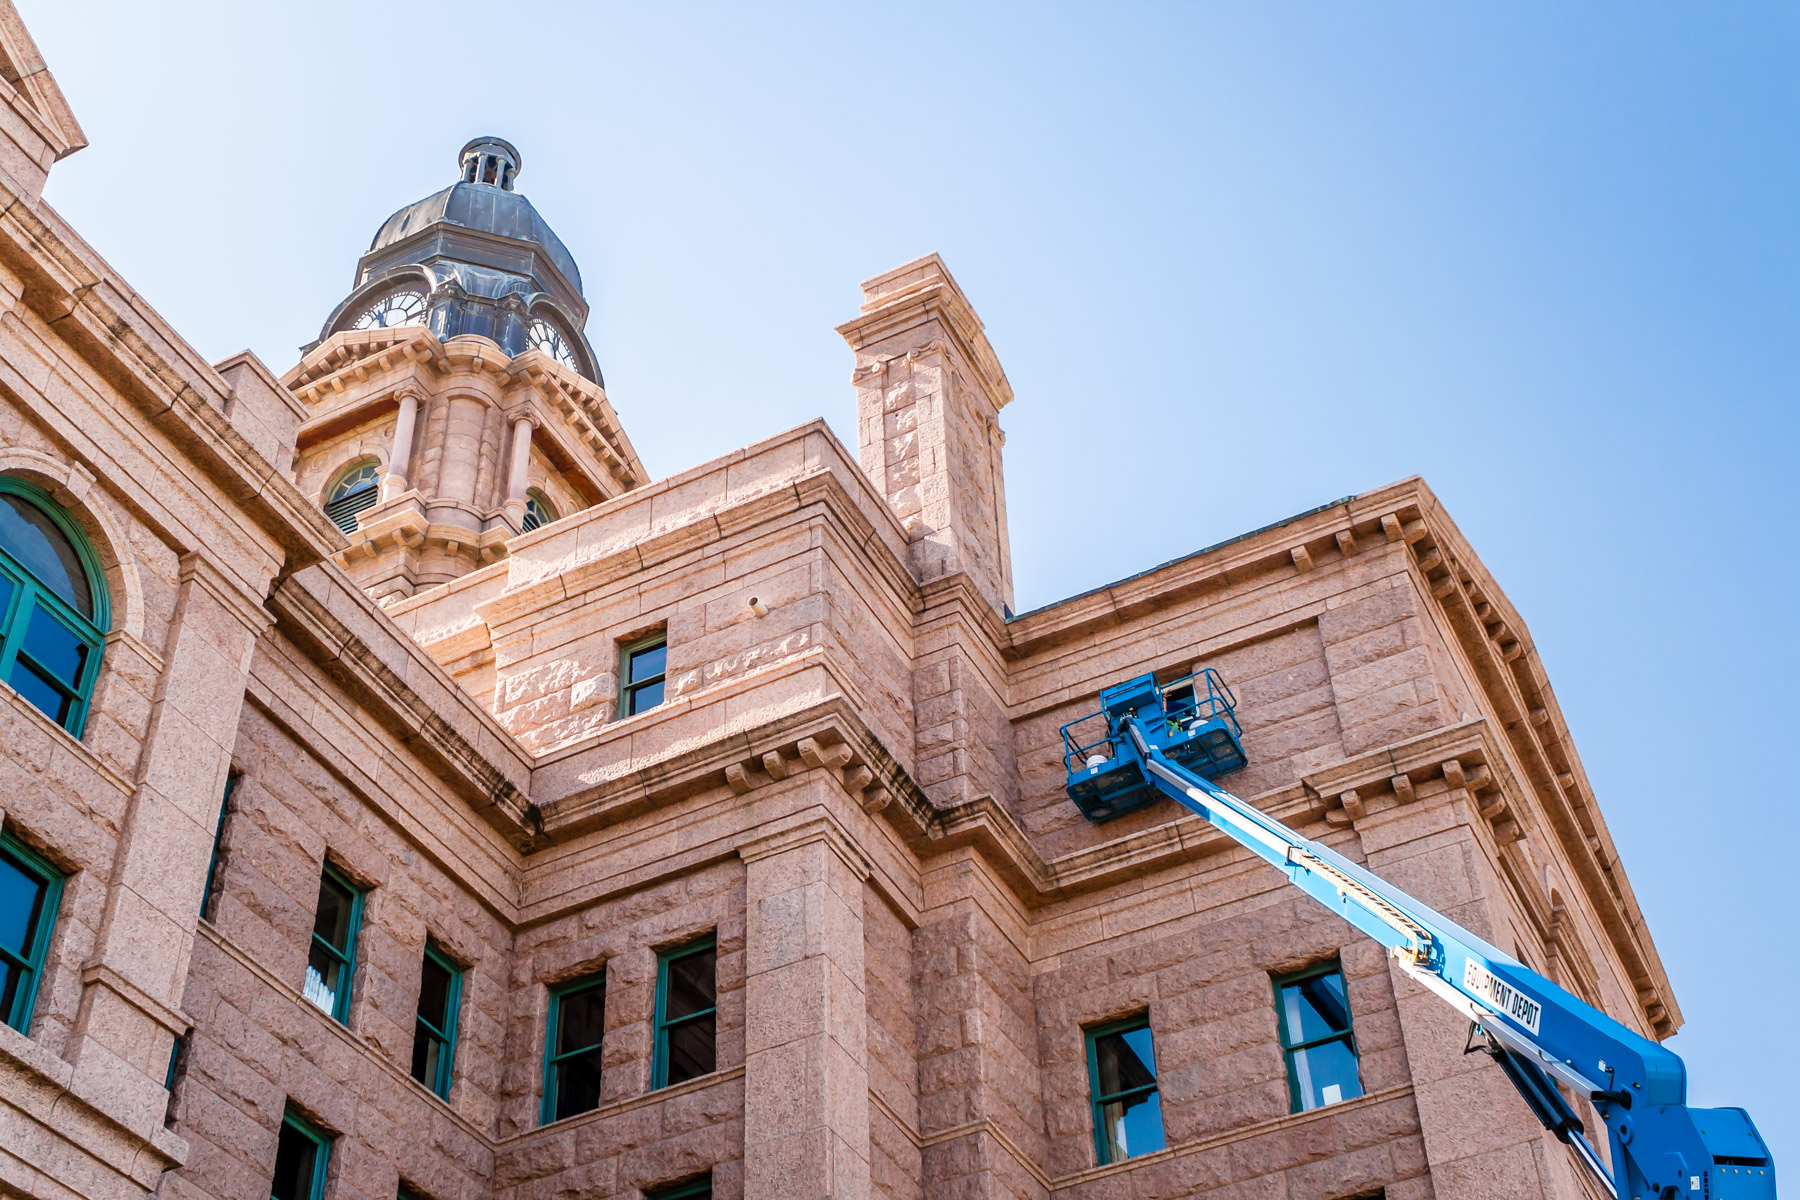 A boom lift reaches up the exterior of the Tarrant County Courthouse, Fort Worth, Texas.